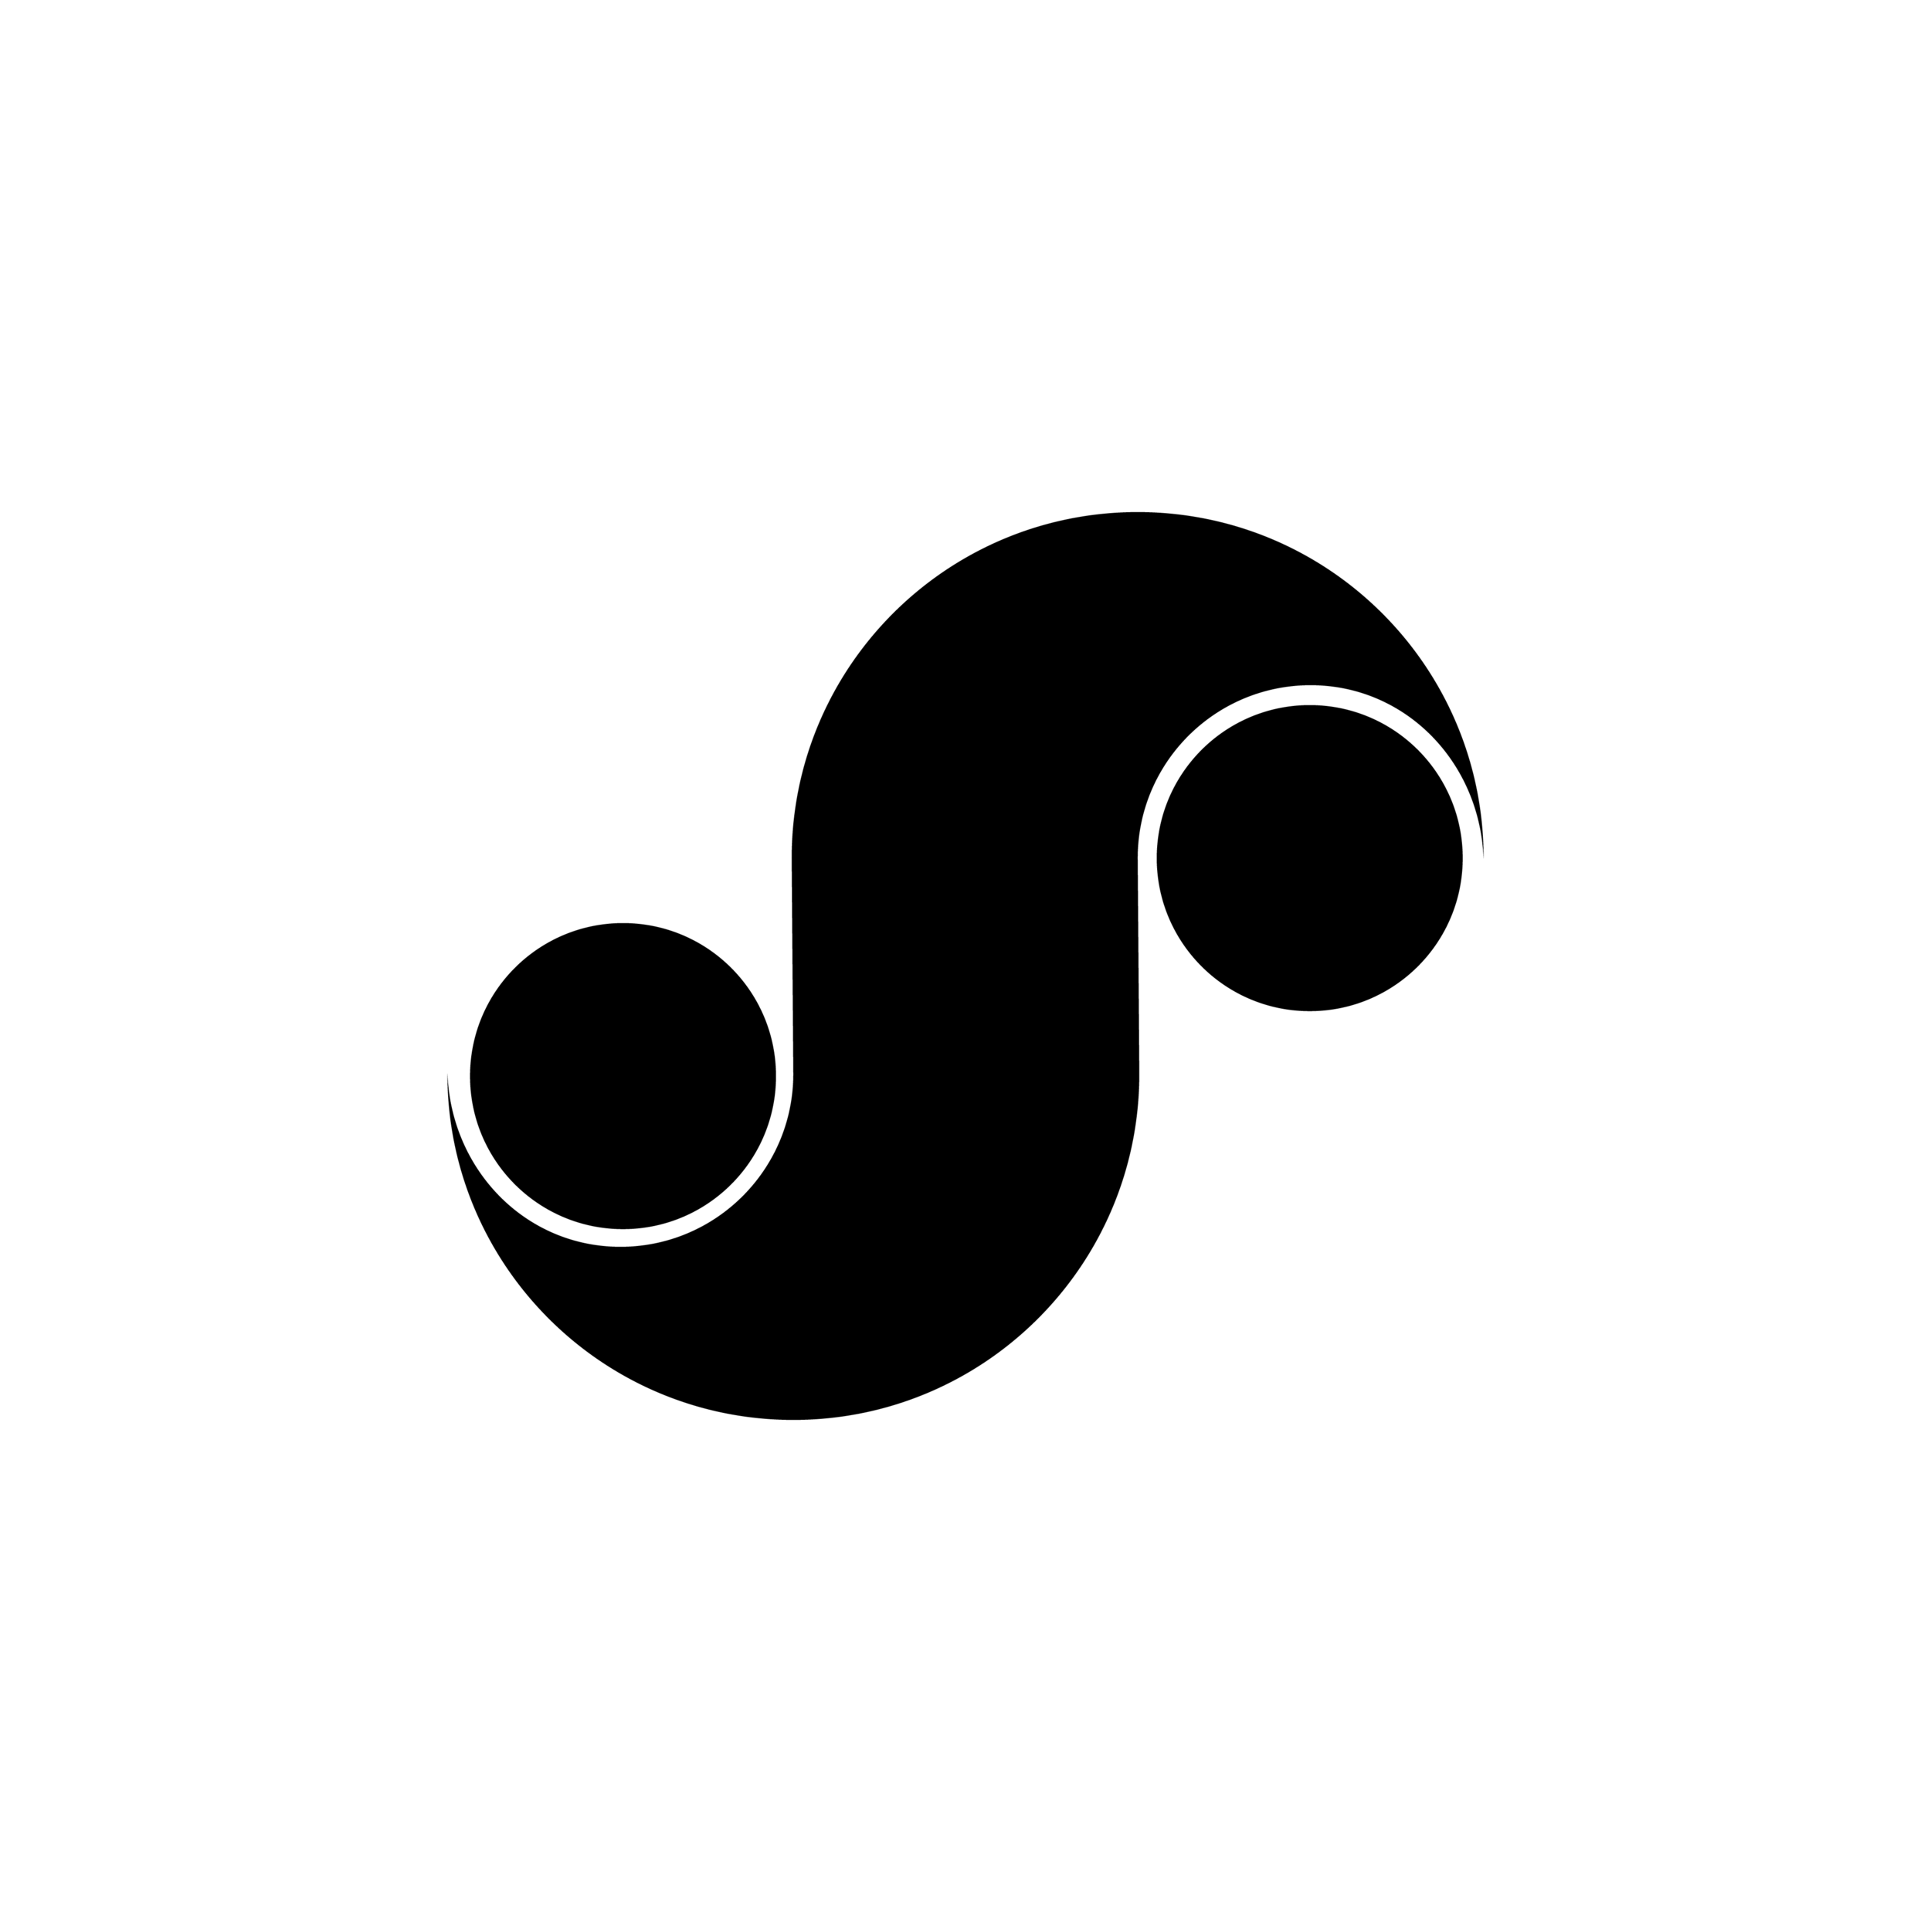 SMS_logo_notype_BLK.png